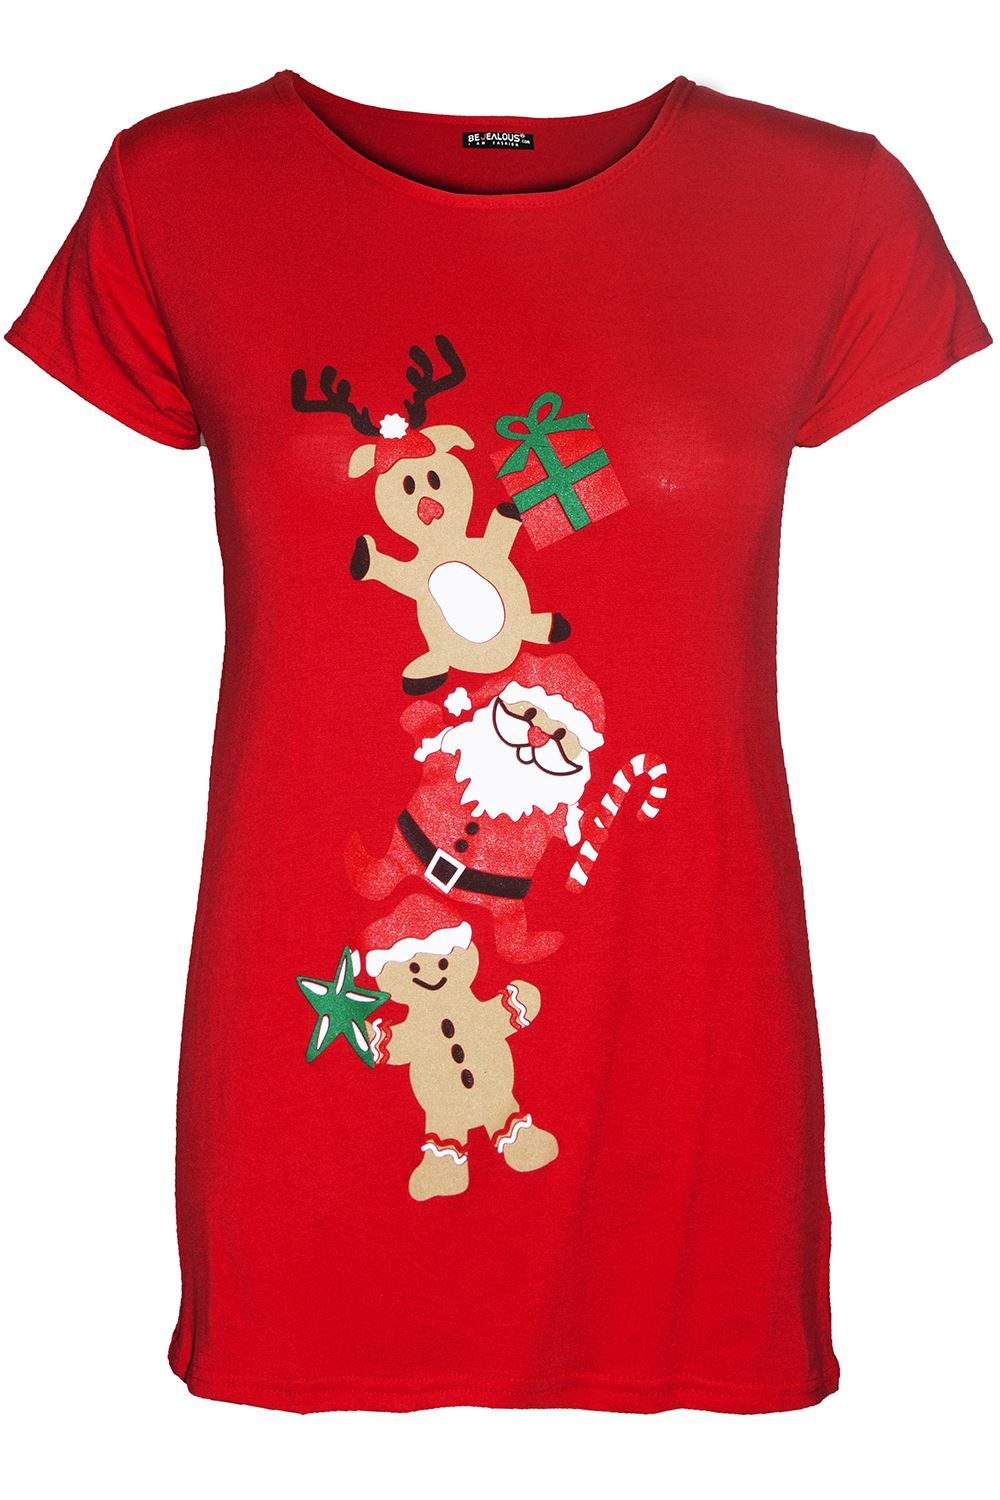 thumbnail 42 - Womens-Christmas-Xmas-Pullover-Elf-Candystick-Snowflakes-Ladies-T-Shirt-Tee-Top